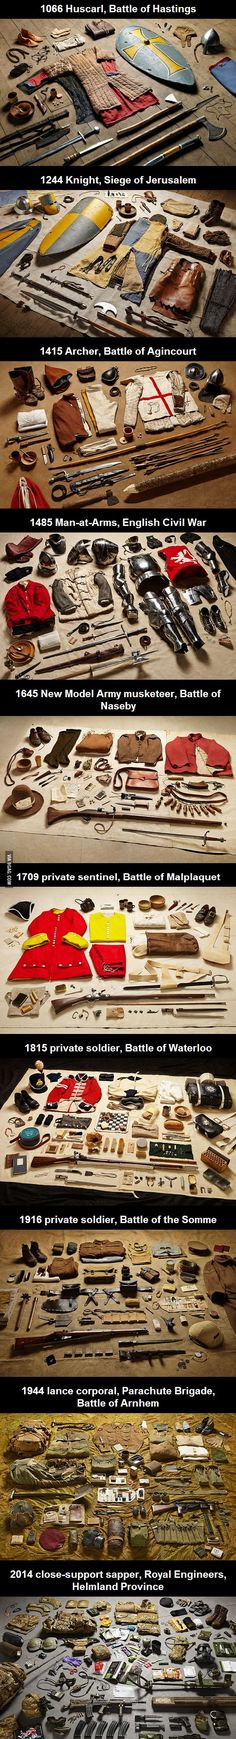 Historical Military Uniforms from the last 1,000 years (good medieval sampling)